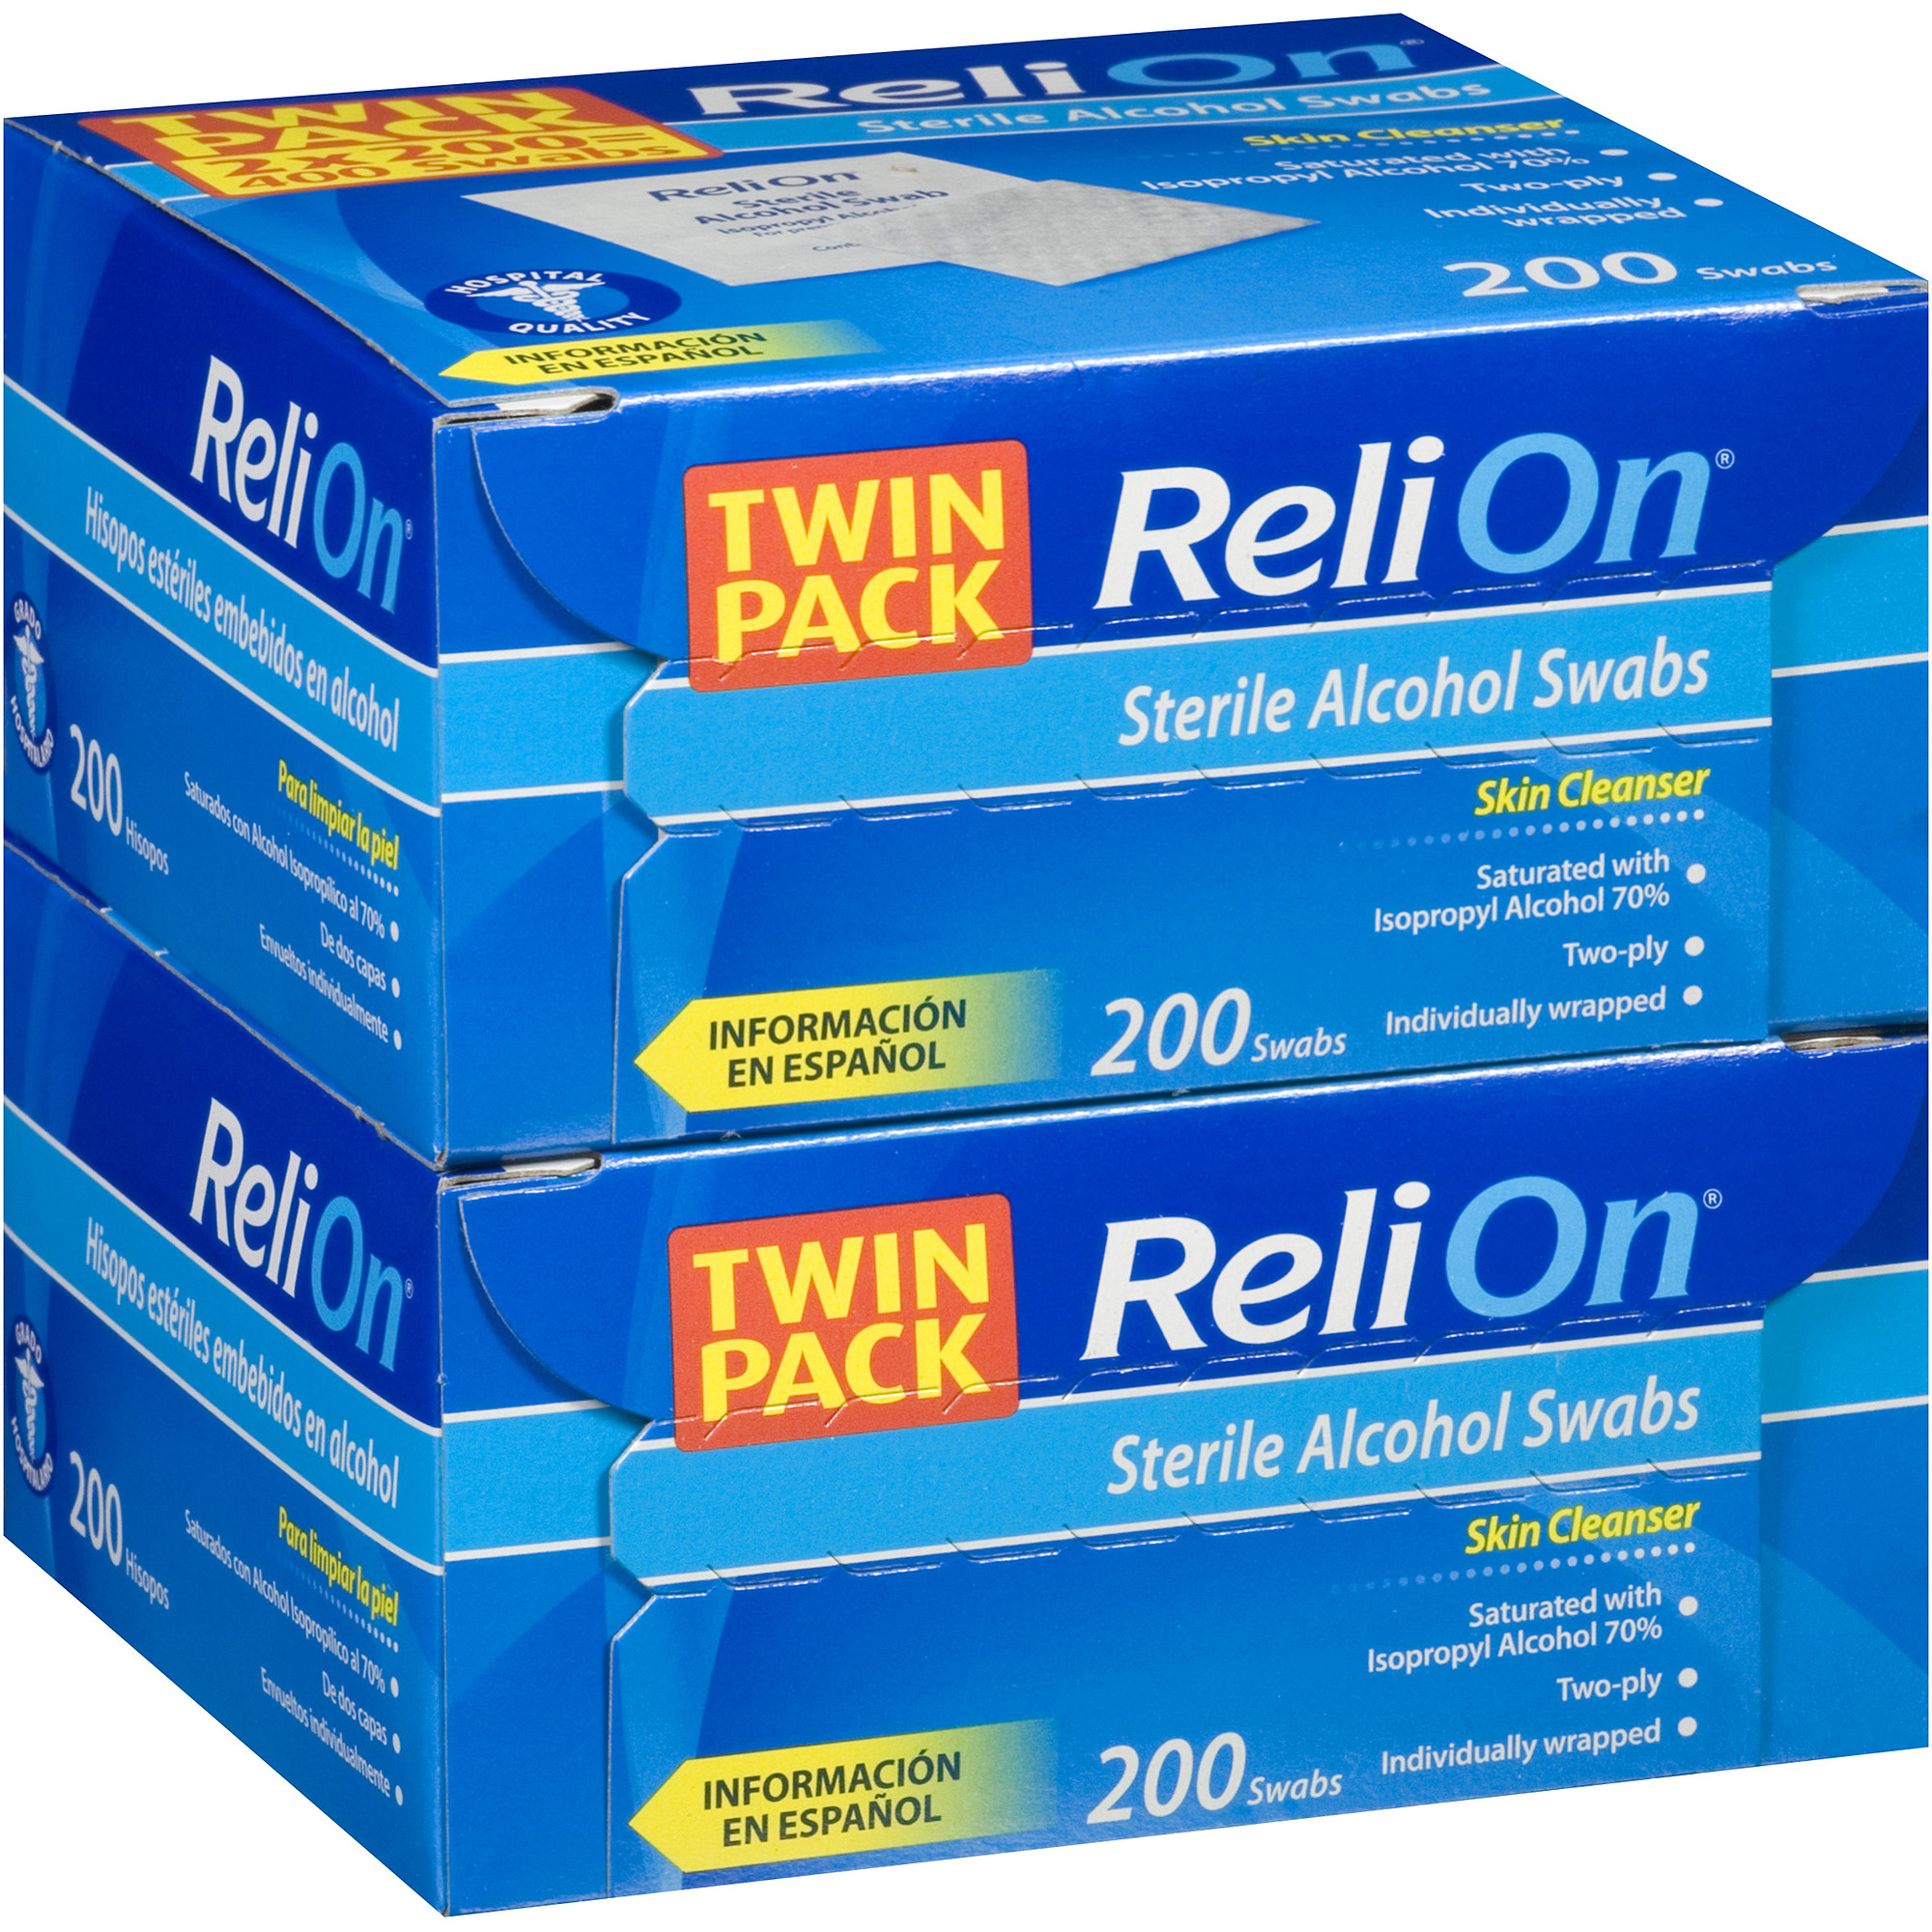 ReliOn Sterile Alcohol Swabs, 200 count, (Pack of 2)